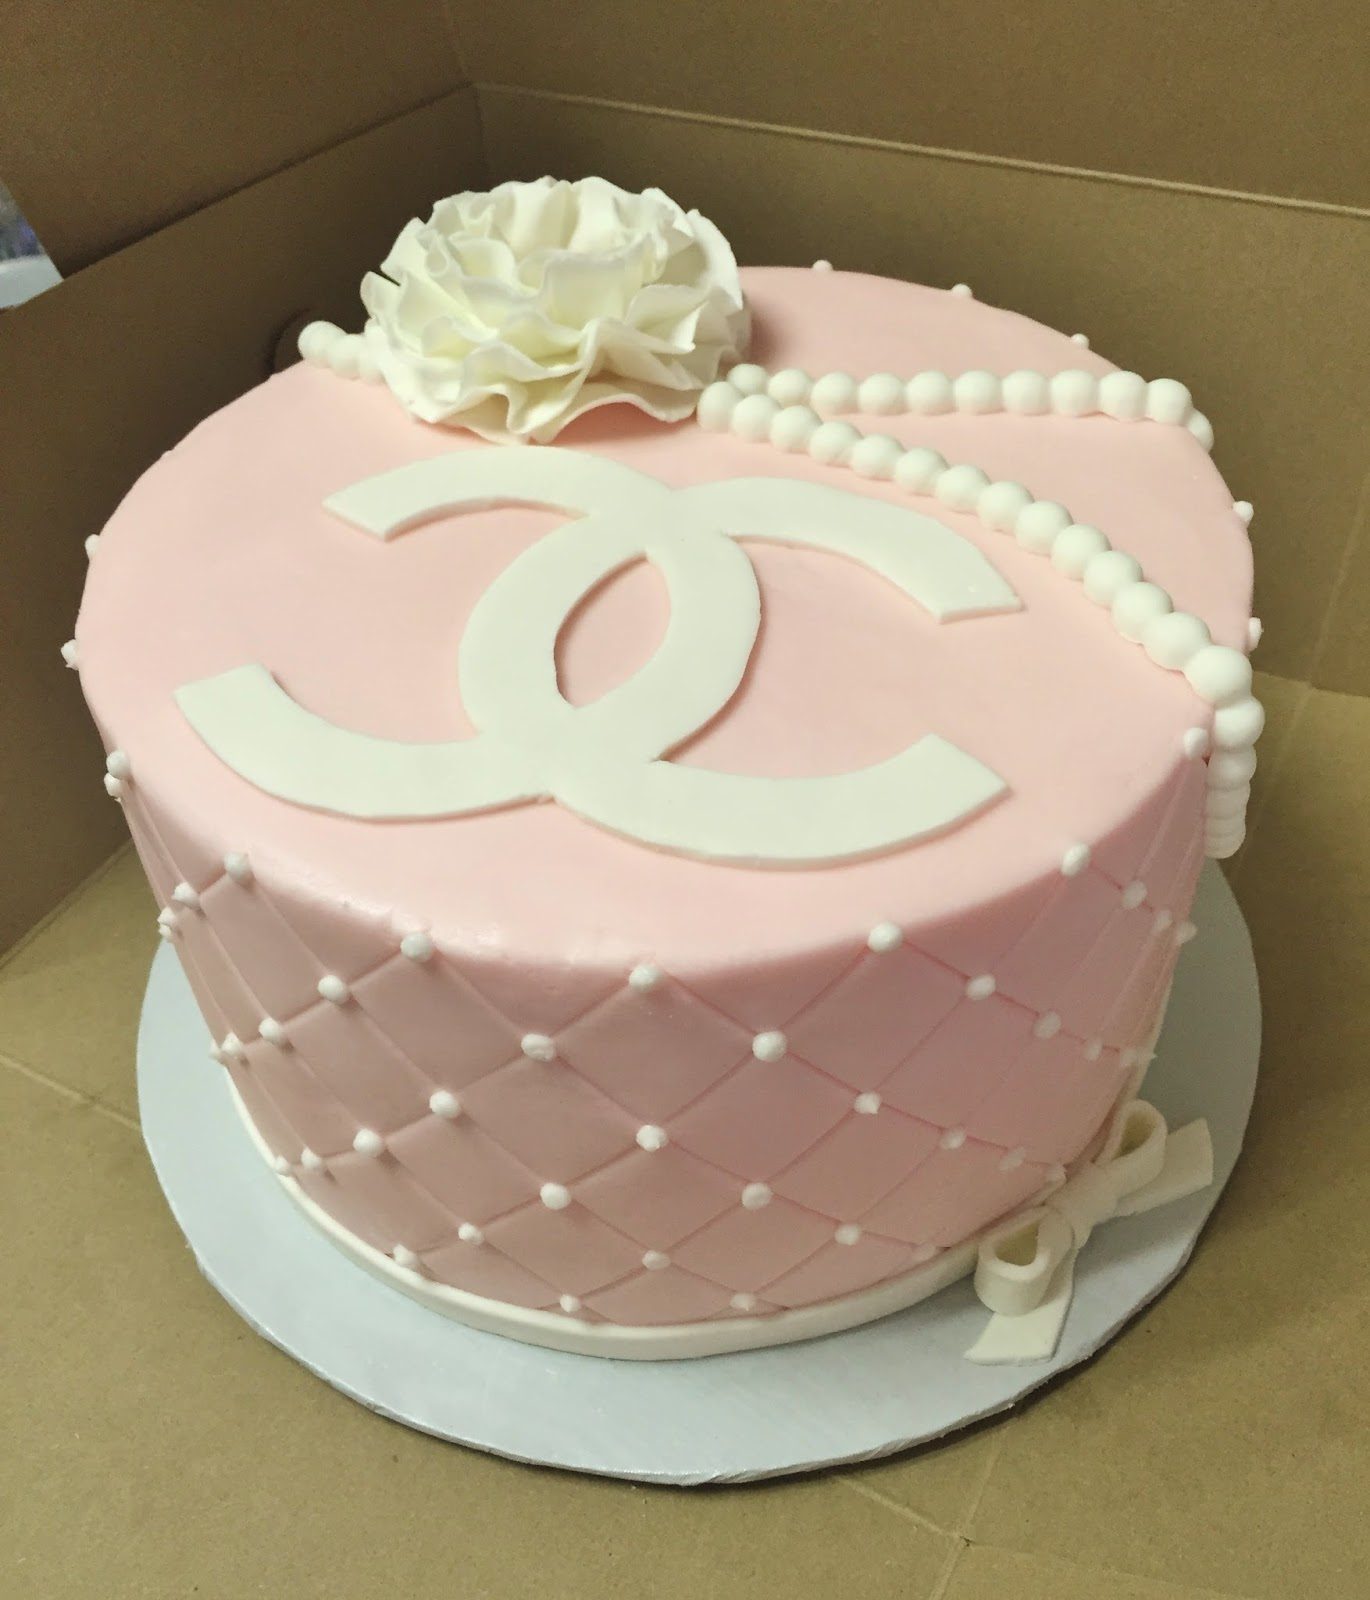 Cakes By Mindy Pink And White Chanel Cake 8 Quot